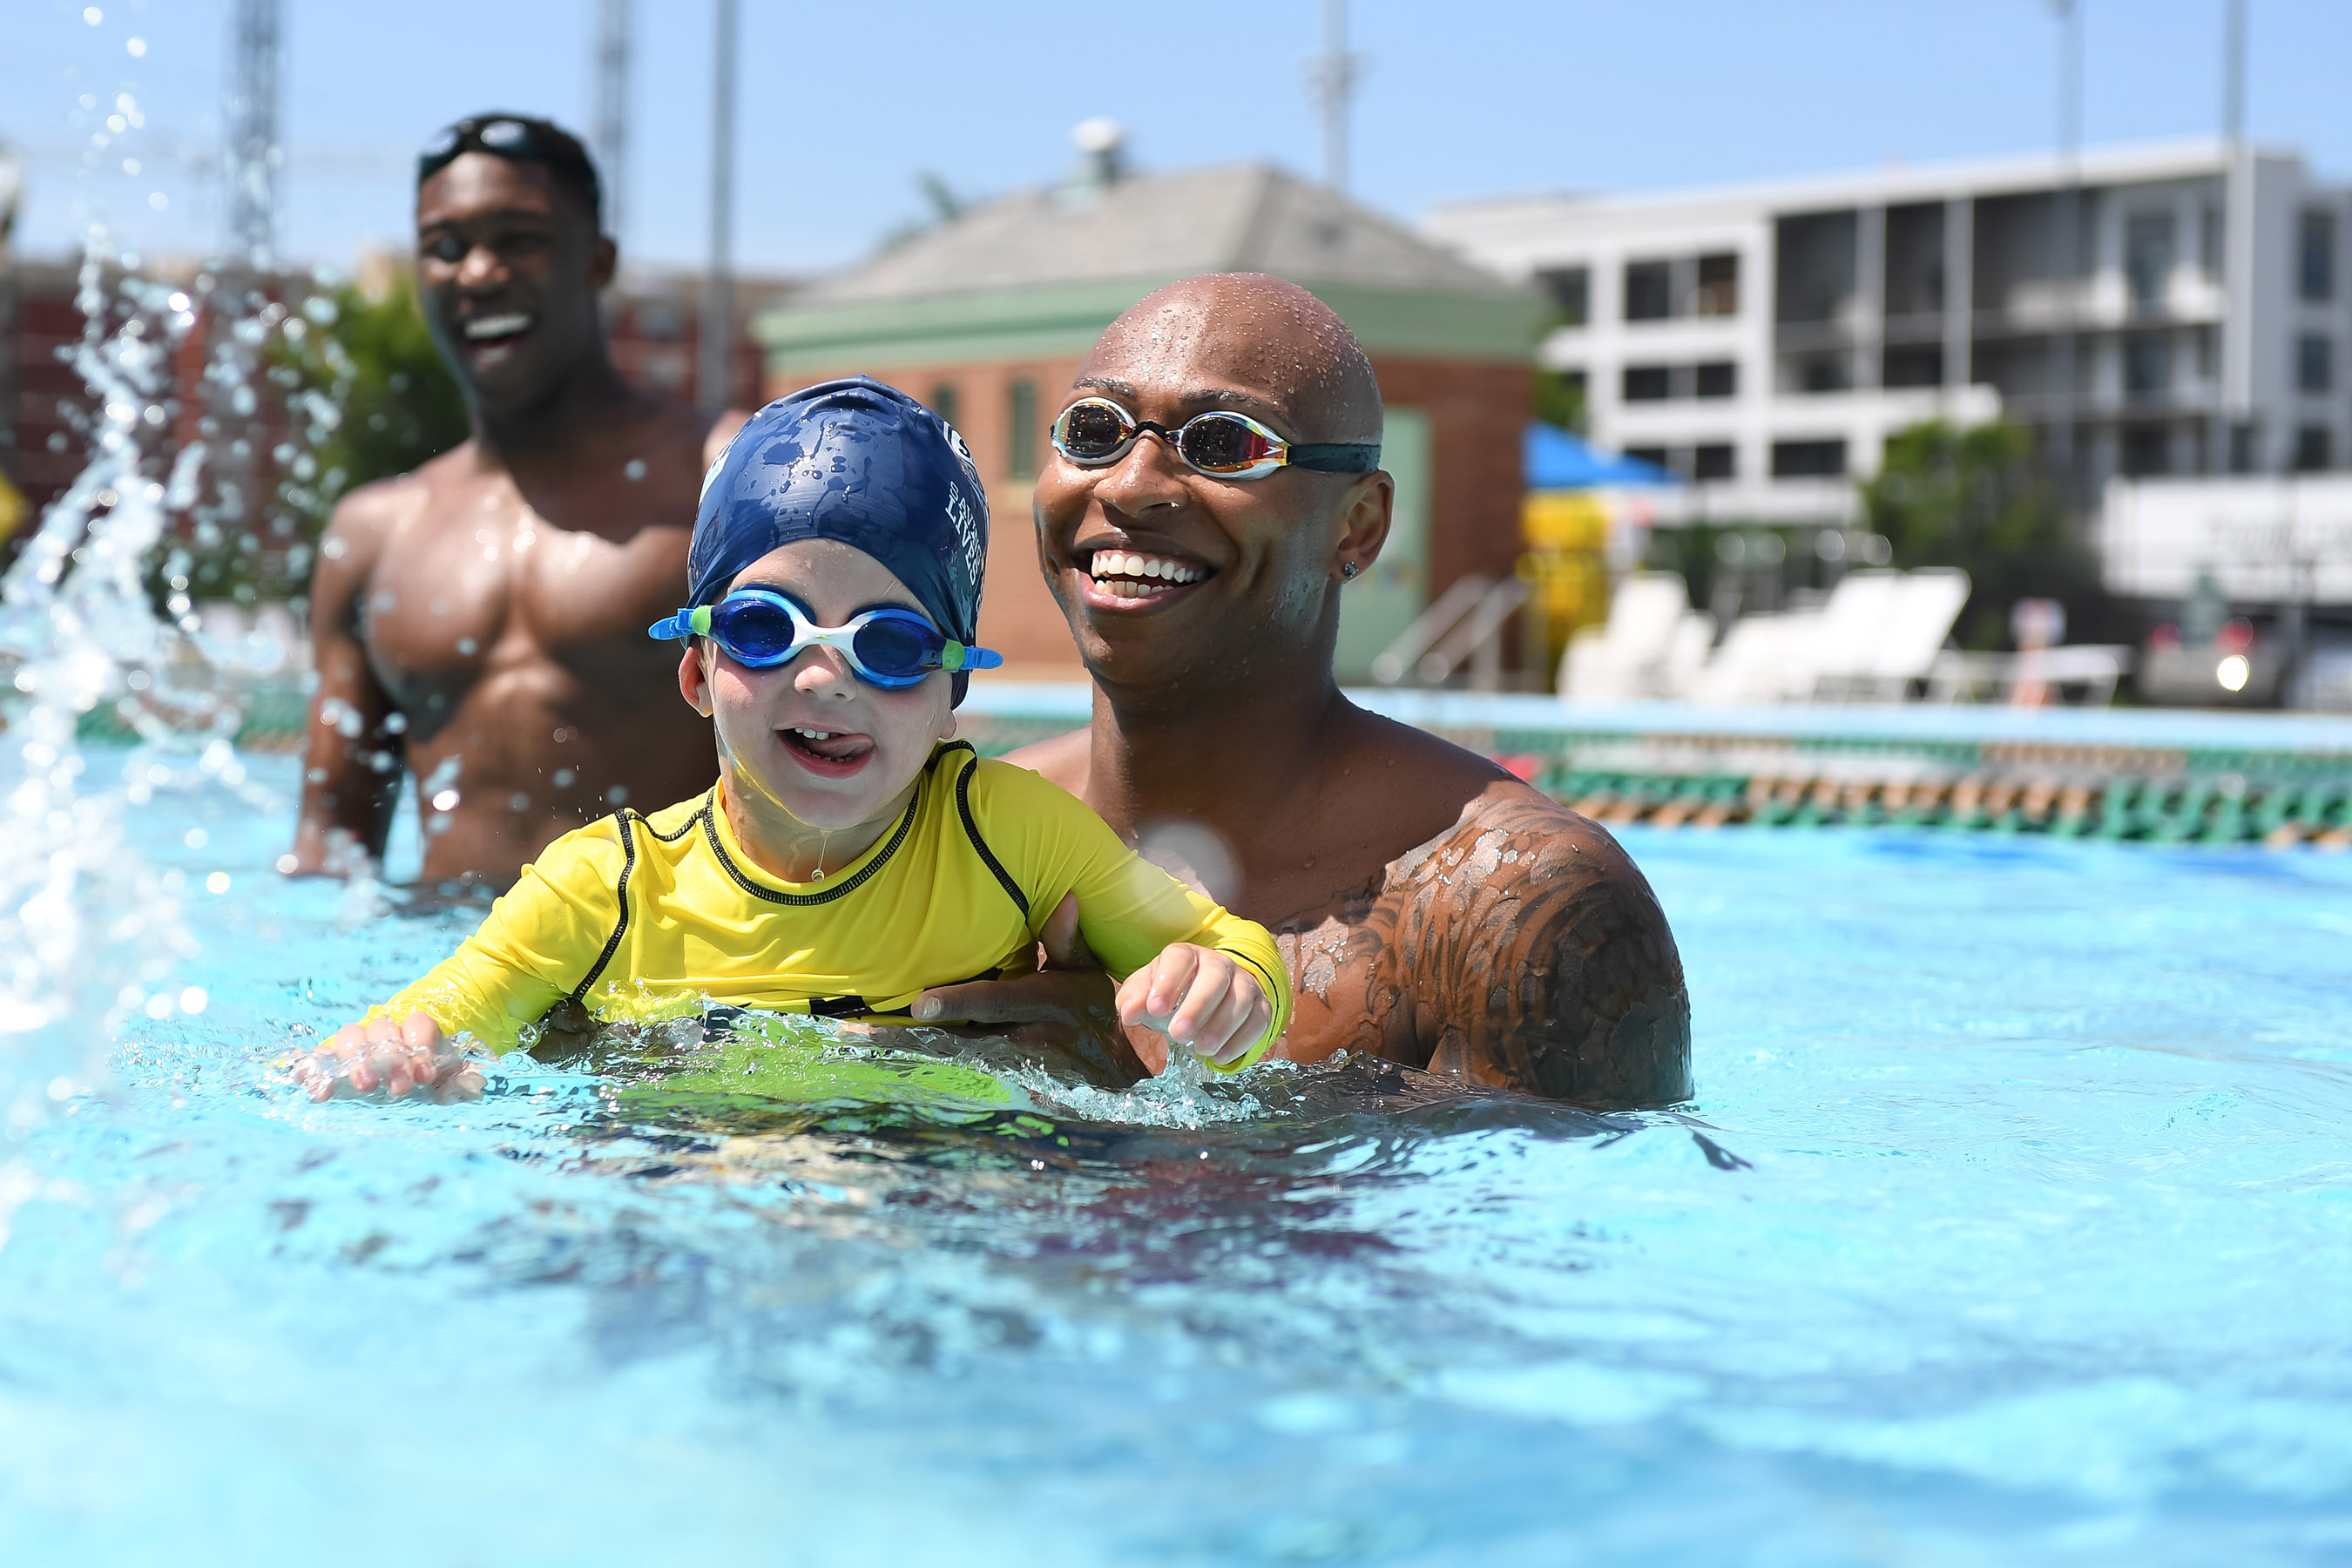 PHOTO CREDIT: © Mike Lewis / USA Swimming Foundation – A child is taught to swim by USA Swimming Foundation ambassador and Olympic gold medalist Cullen Jones along with Sports Illustrated Sports Kid of the Year, Reece Whitley as part of USA Swimming Foundation's Make a Splash initiative.